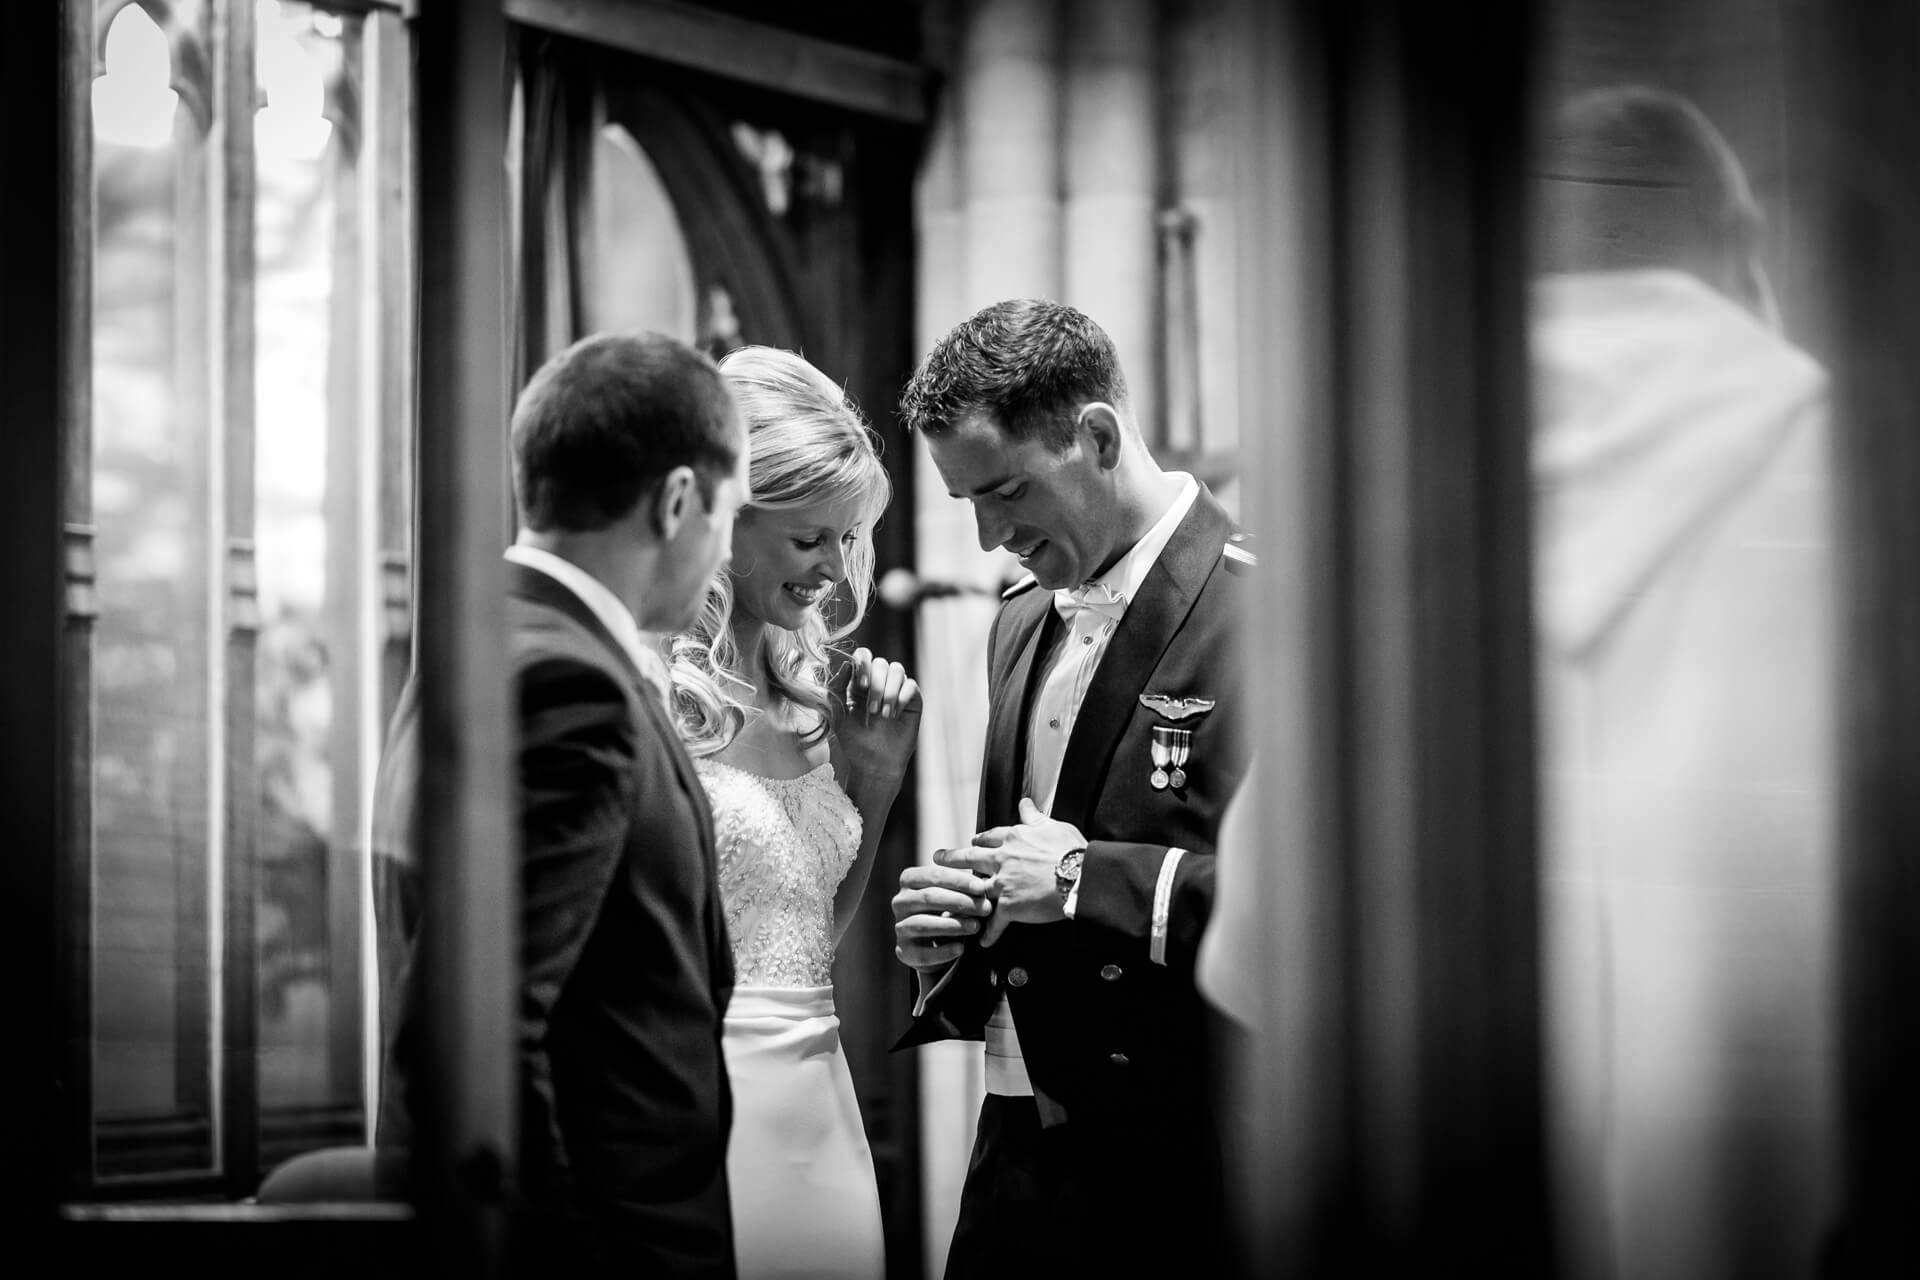 groom showing the bride his ring in the church